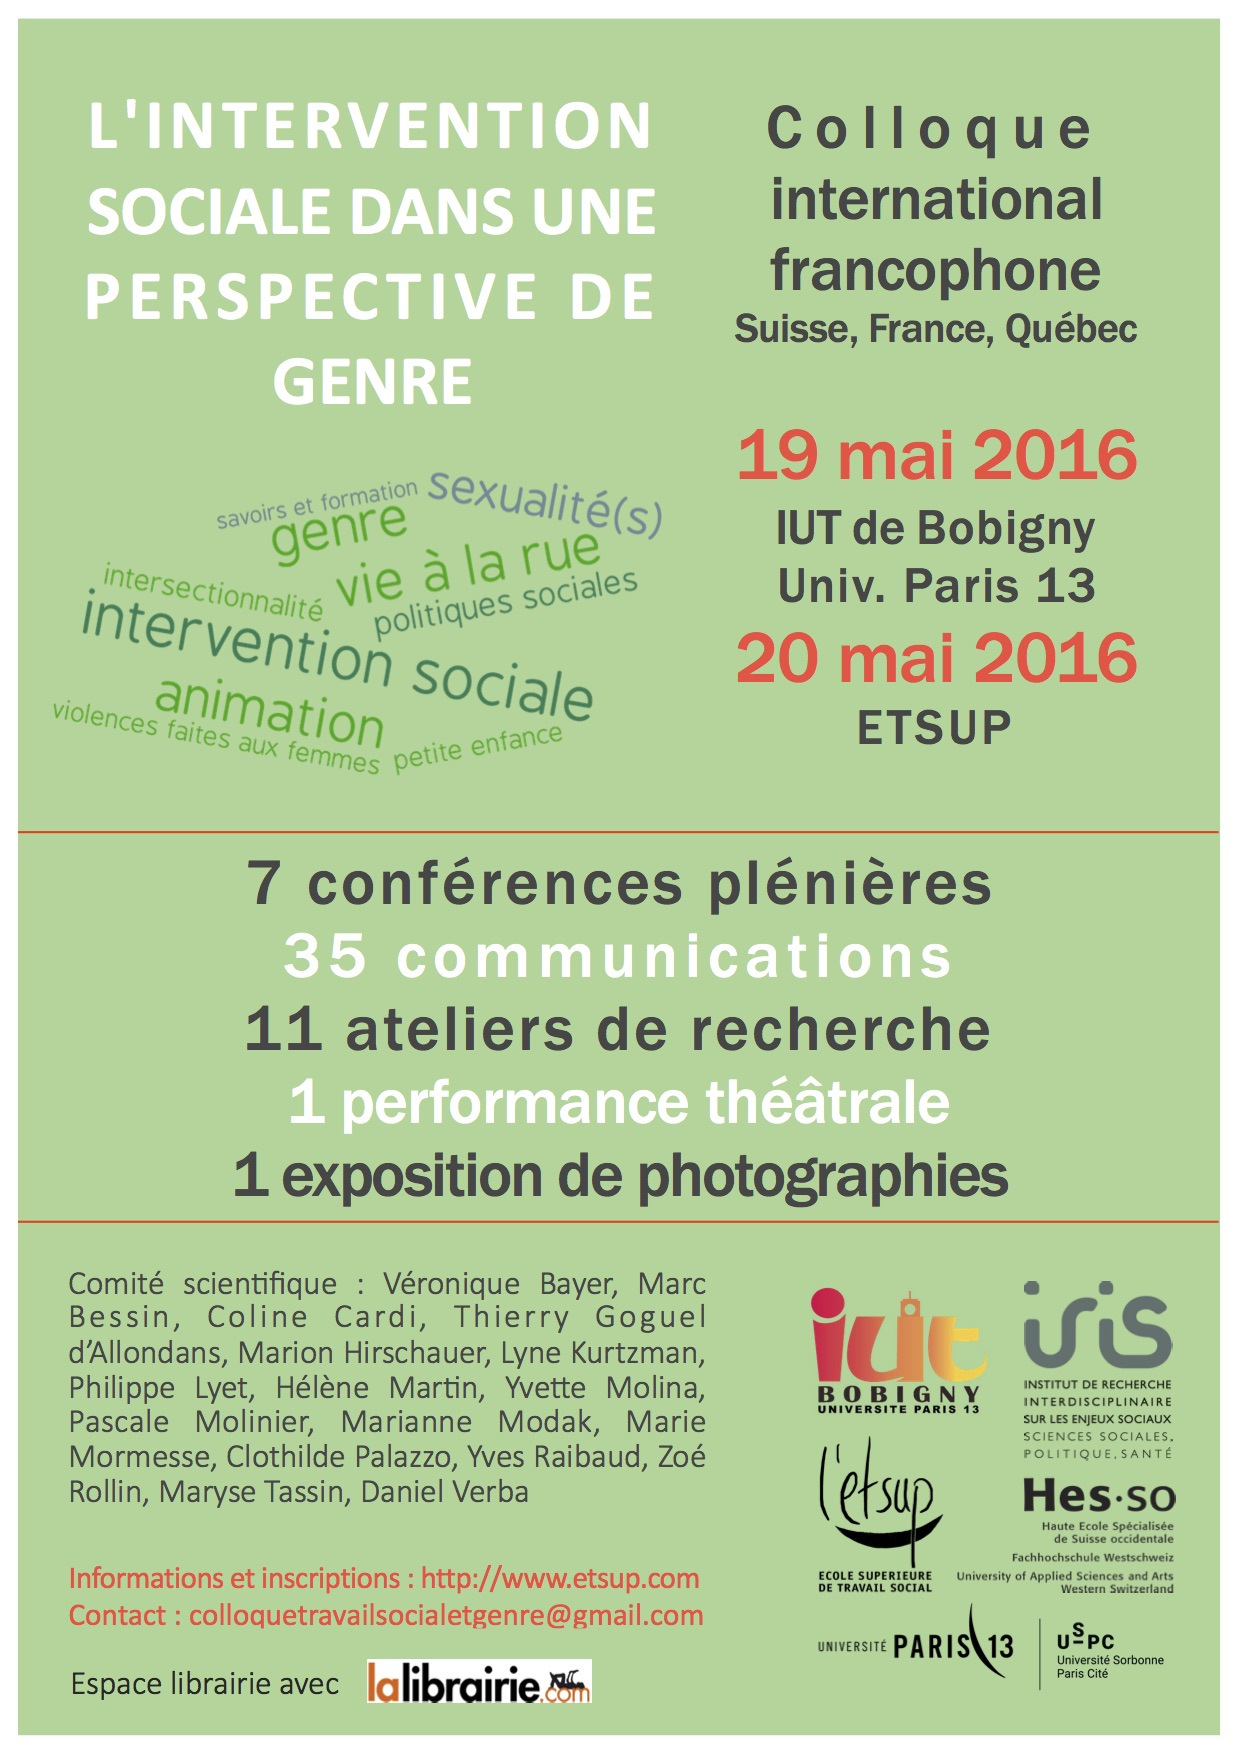 Colloque > L'intervention sociale au prisme du genre – 19-20 mai 2016